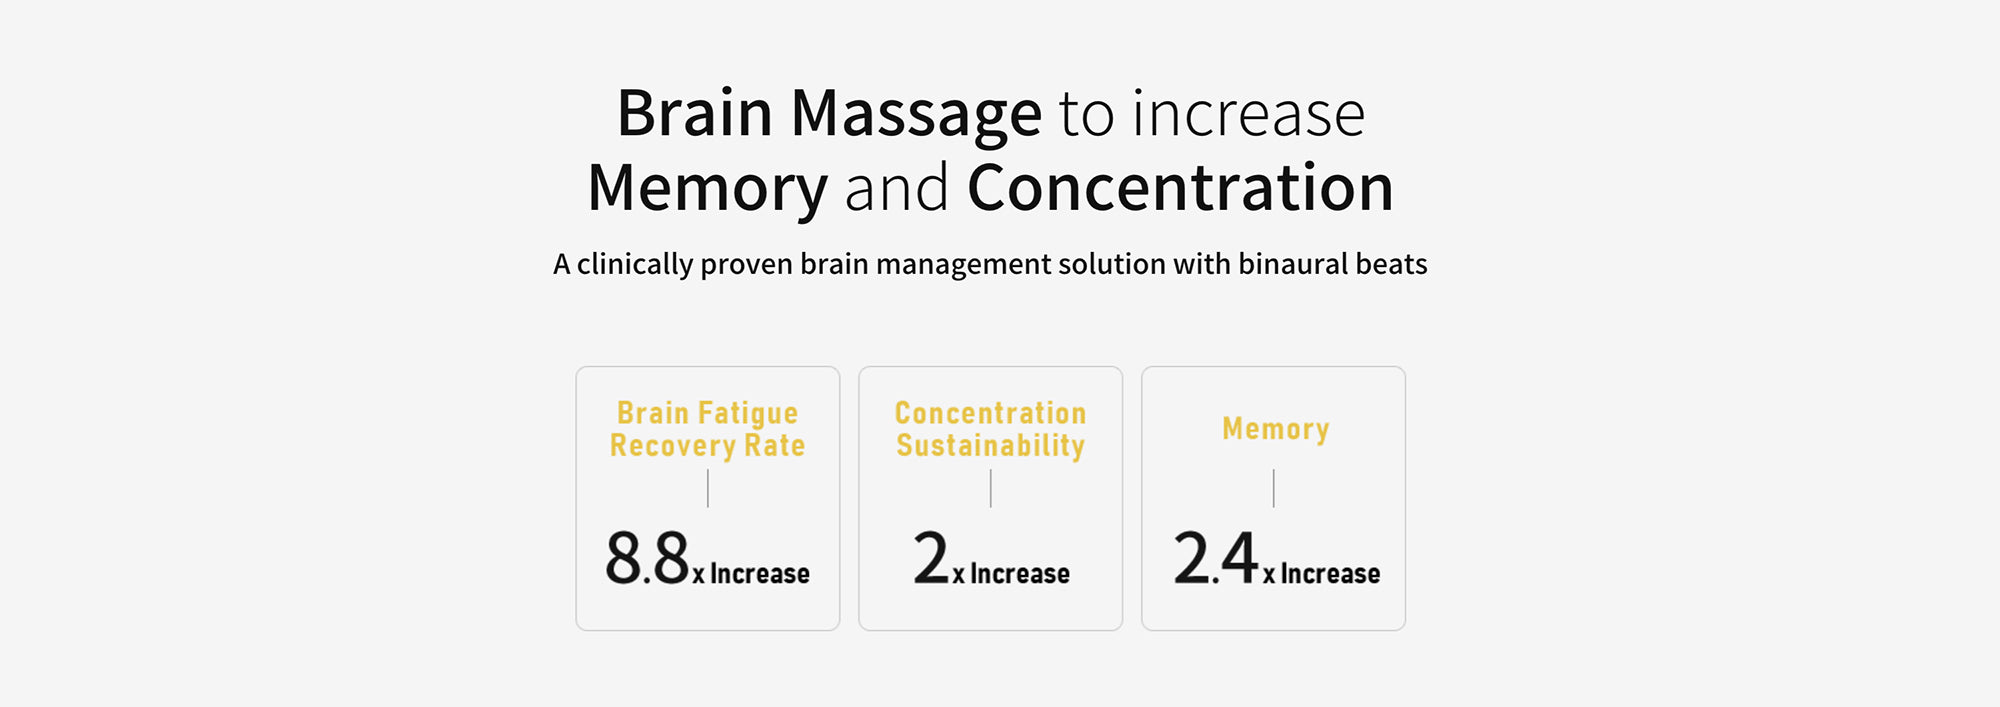 Brain Massage To Increase Memory And Concentration